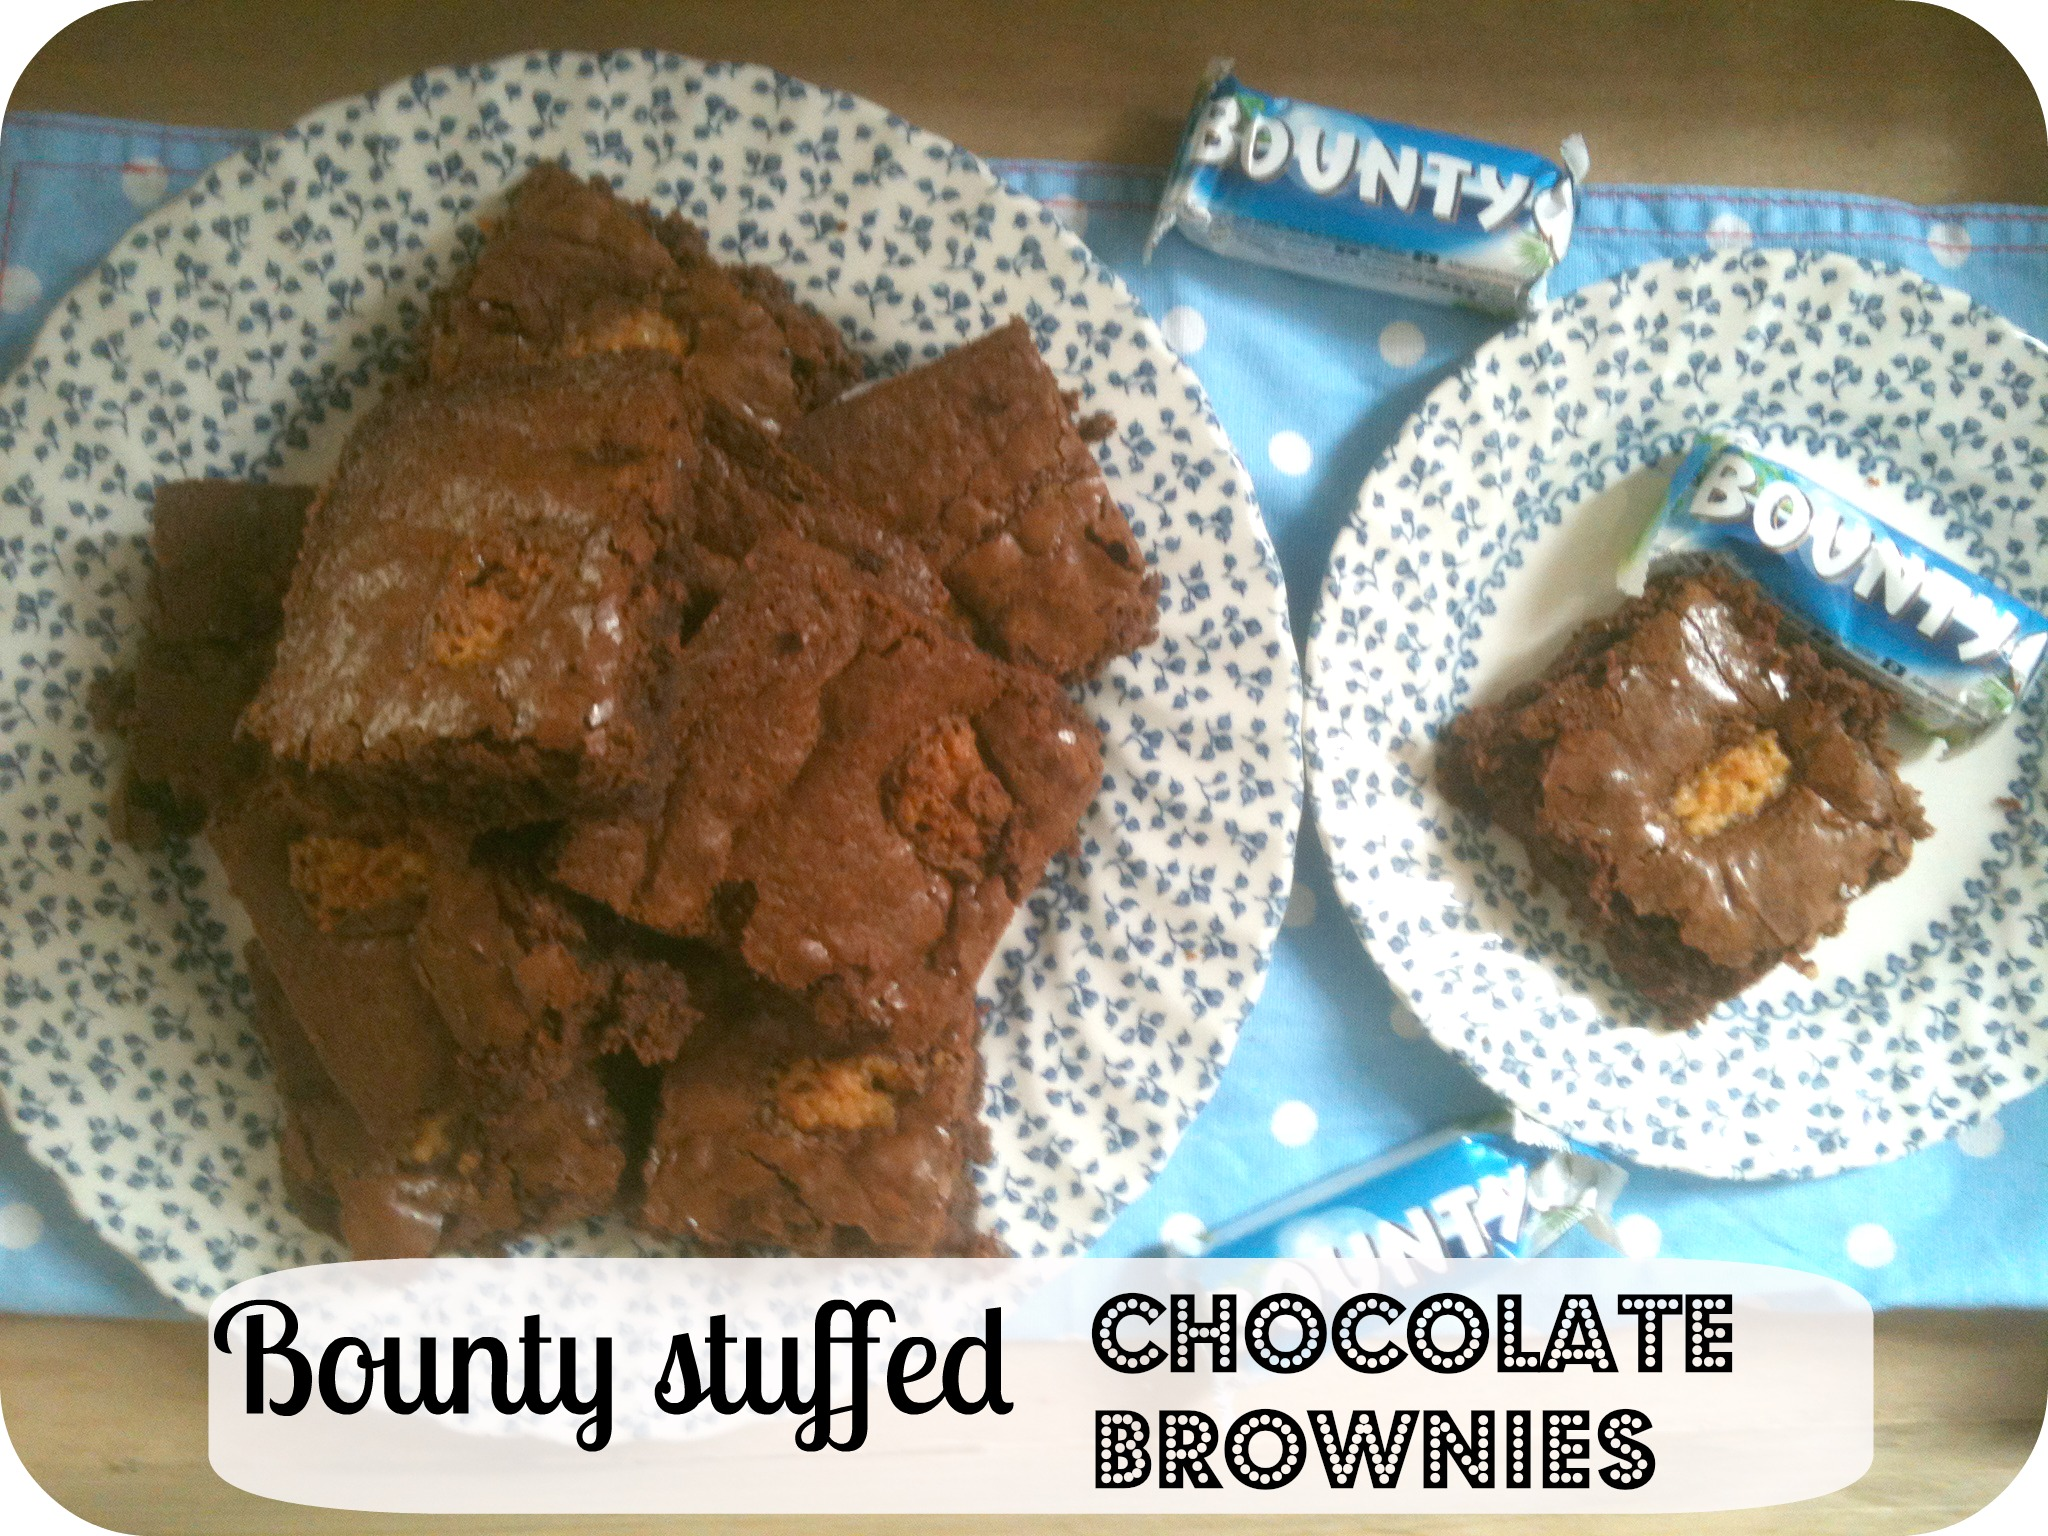 The Top 10 Best Brownie Recipes! | kerrycooks.com